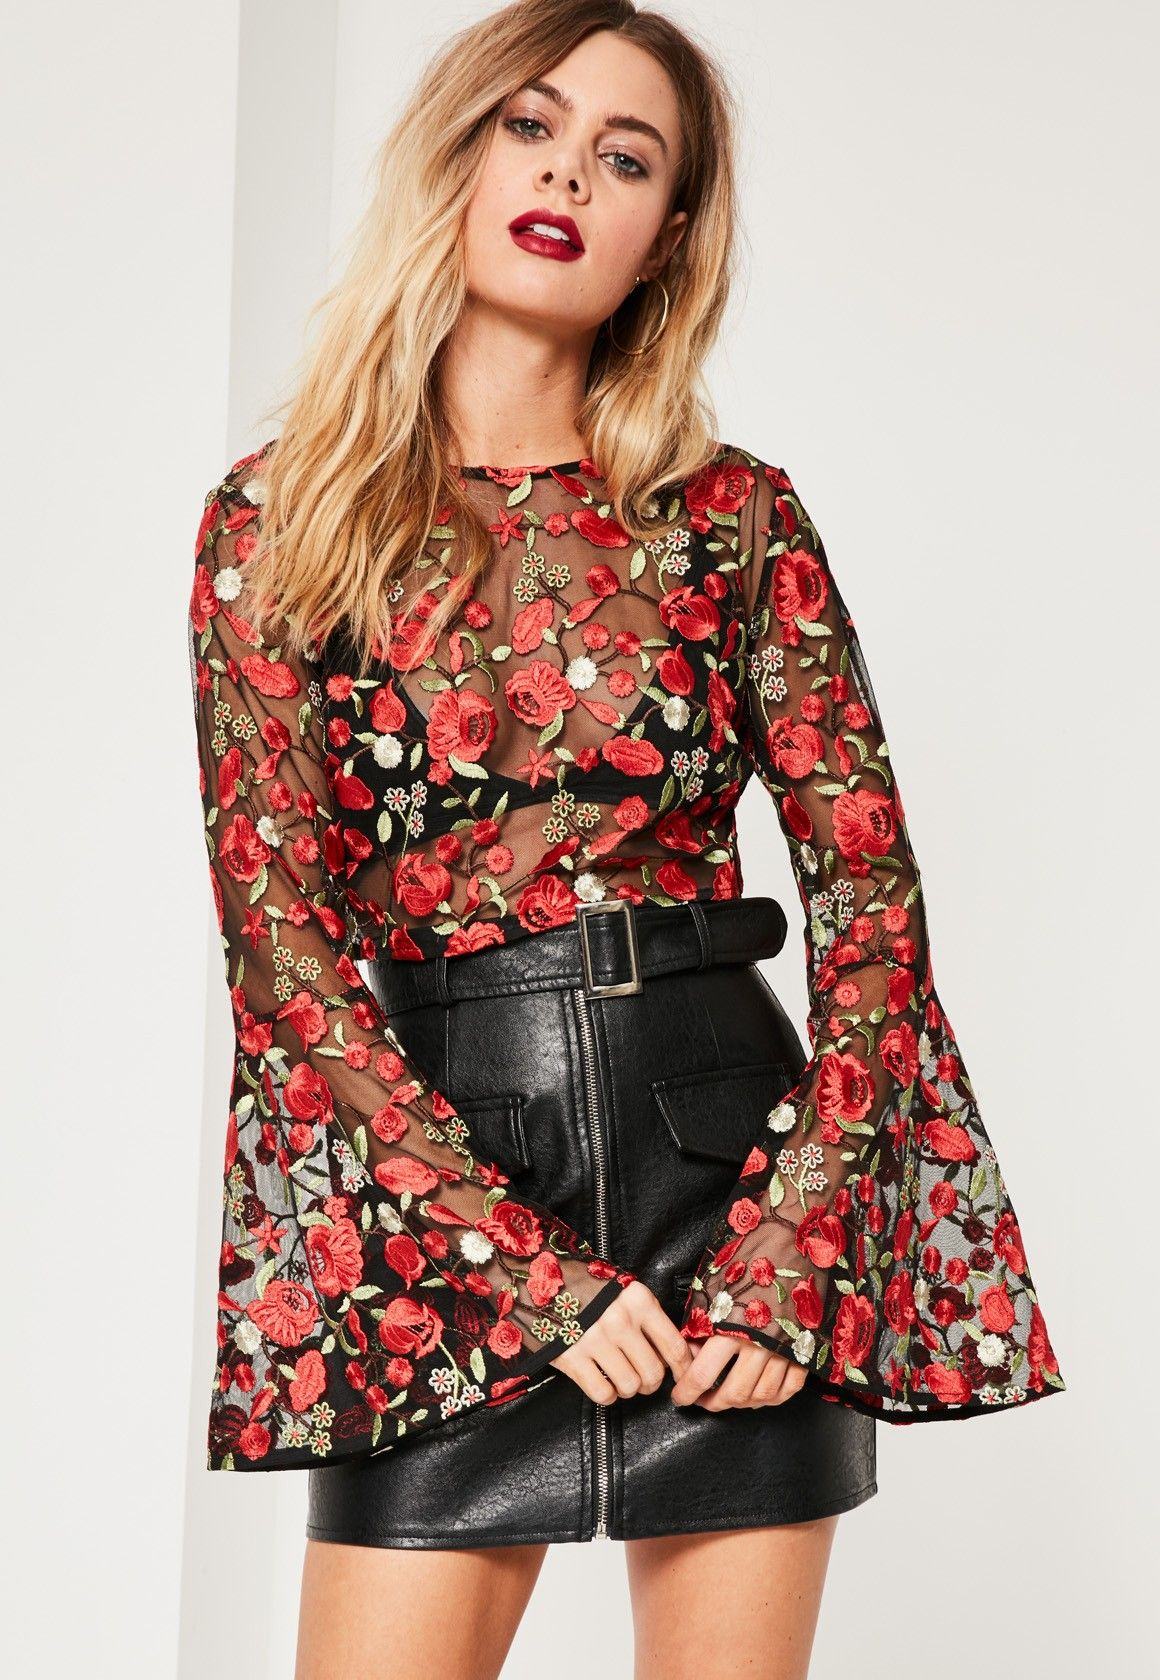 6f3e961461 Stand out from the crowd in this fierce floral embroidered top with boho  inspired bell sleeves.